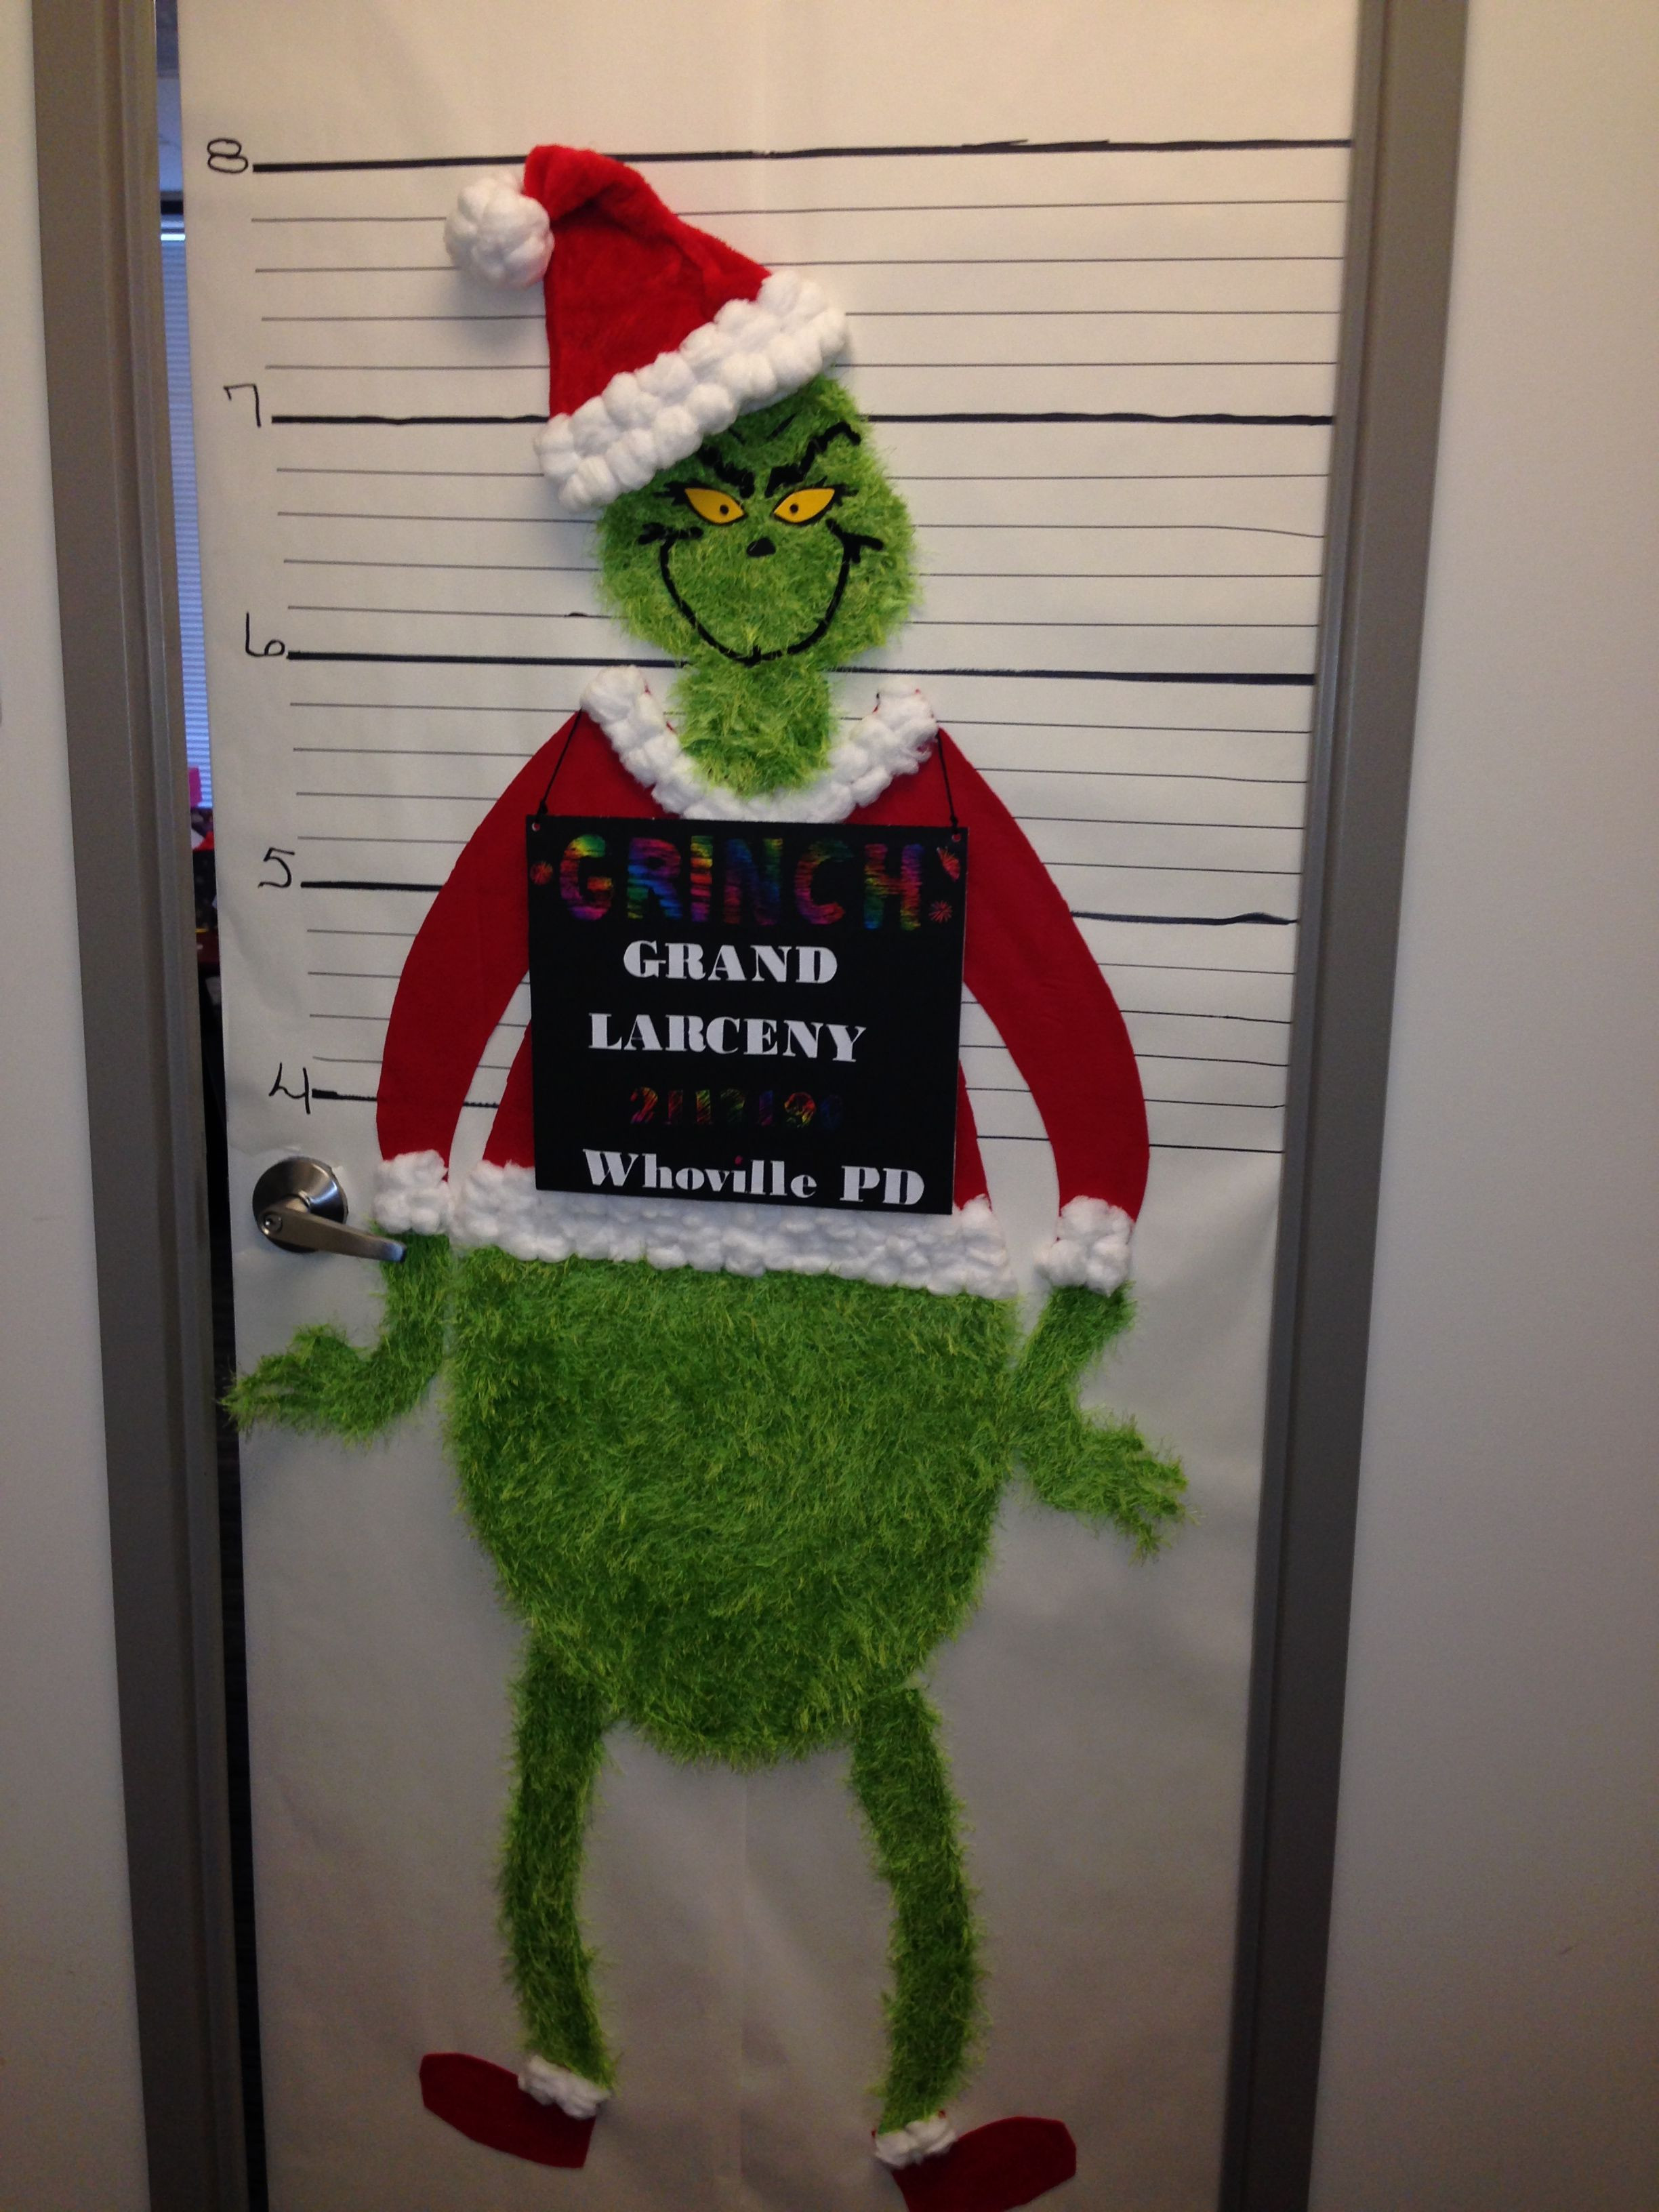 Unique Door Decoration the Grinch Christmas Fice Door Decorating Contest